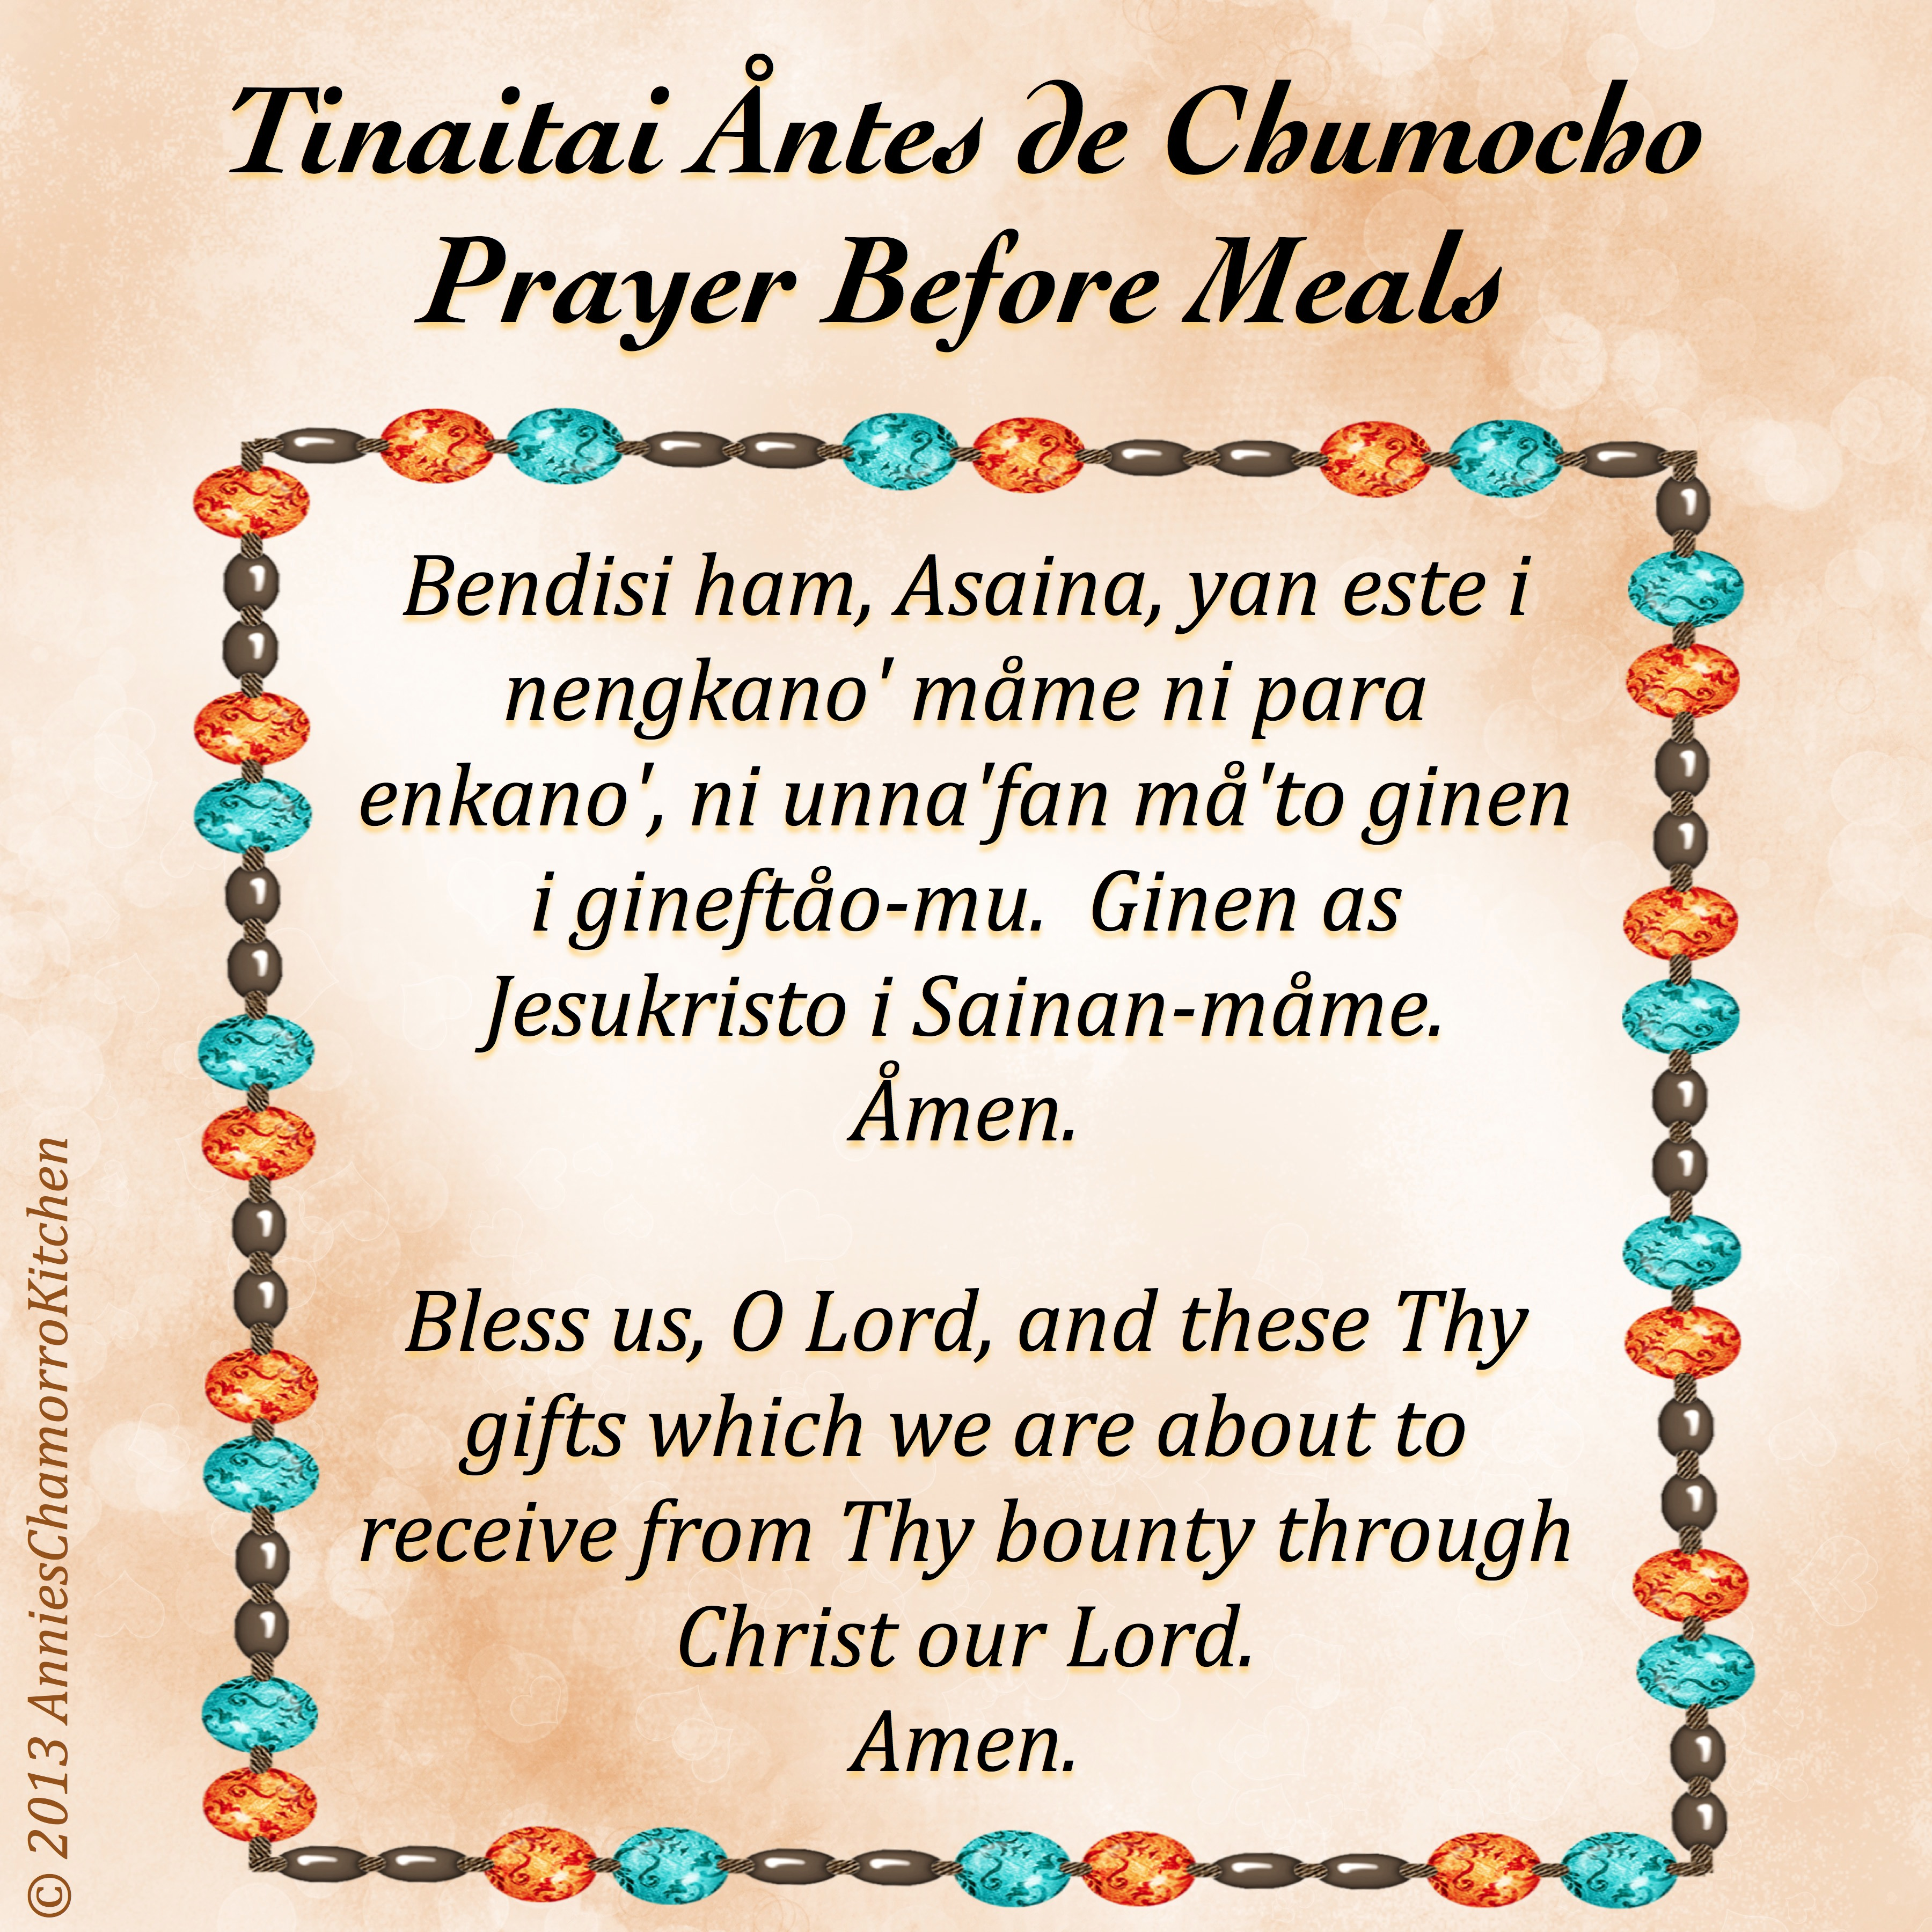 Prayer Before Meals ~ Tinaitai Åntes de Chumocho | Annie's Chamorro ...